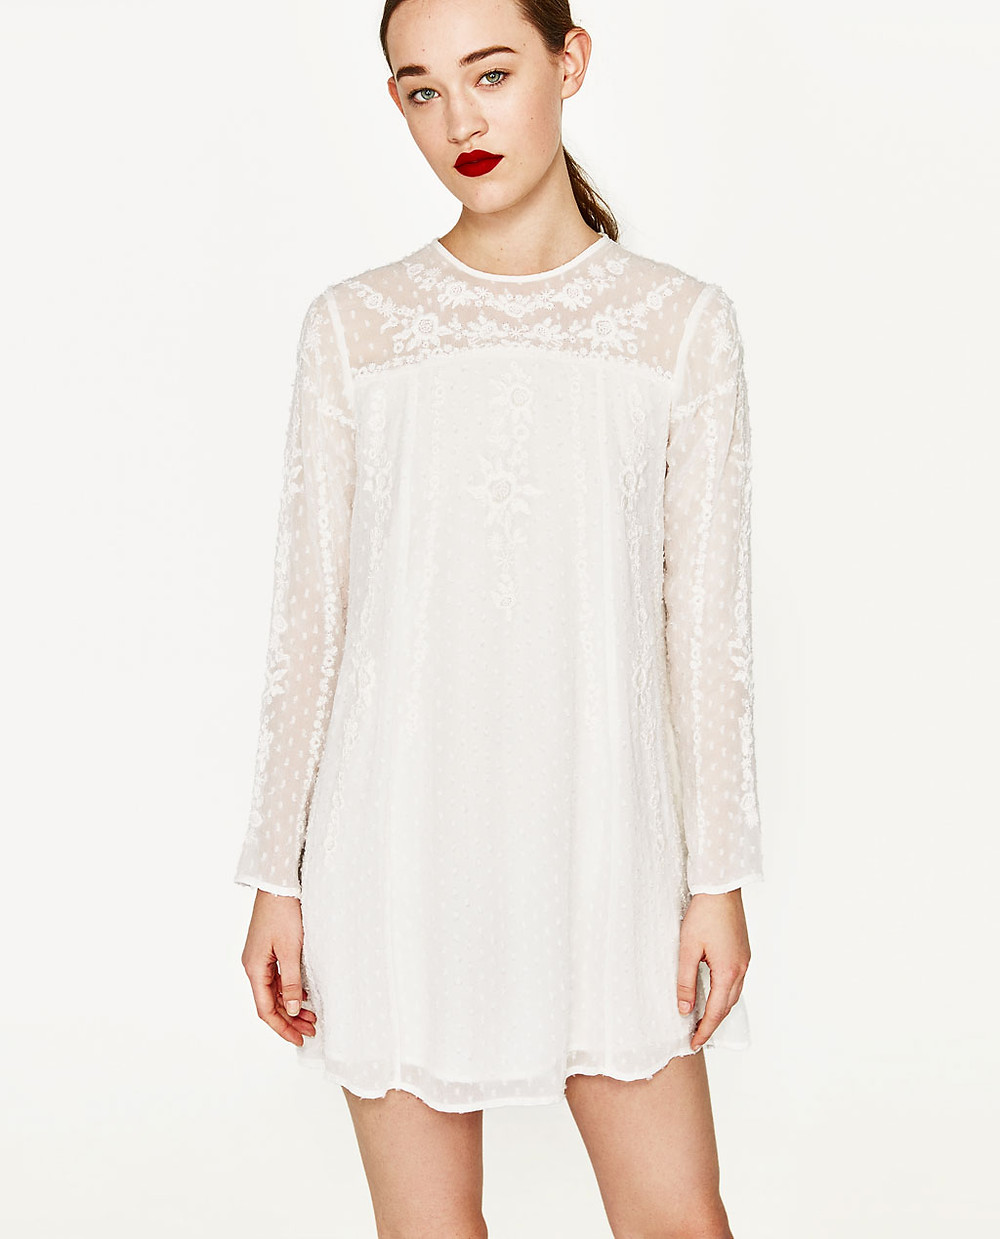 PLUMETIS DRESS WITH EMBROIDERED FLOWERS from Zara